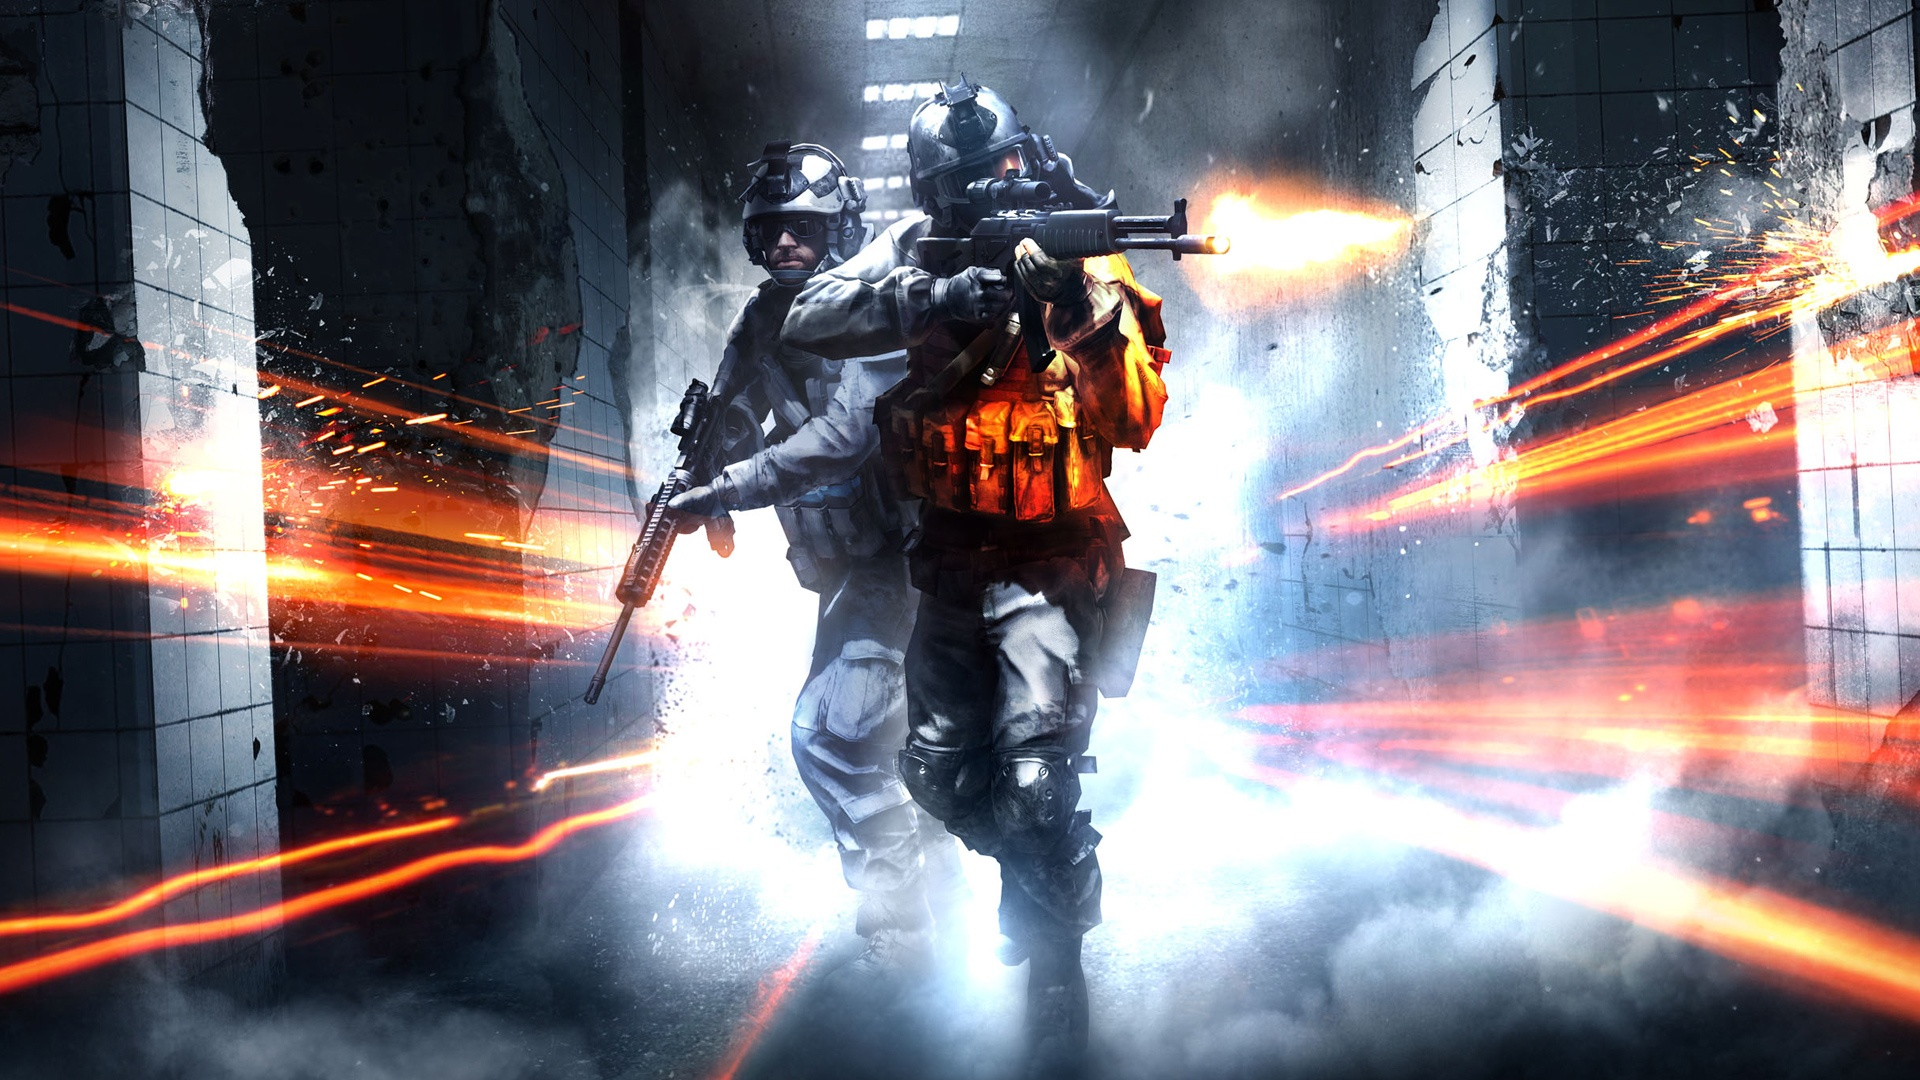 Battlefield Action Game wallpapers Collection Best Fun For All 1920x1080